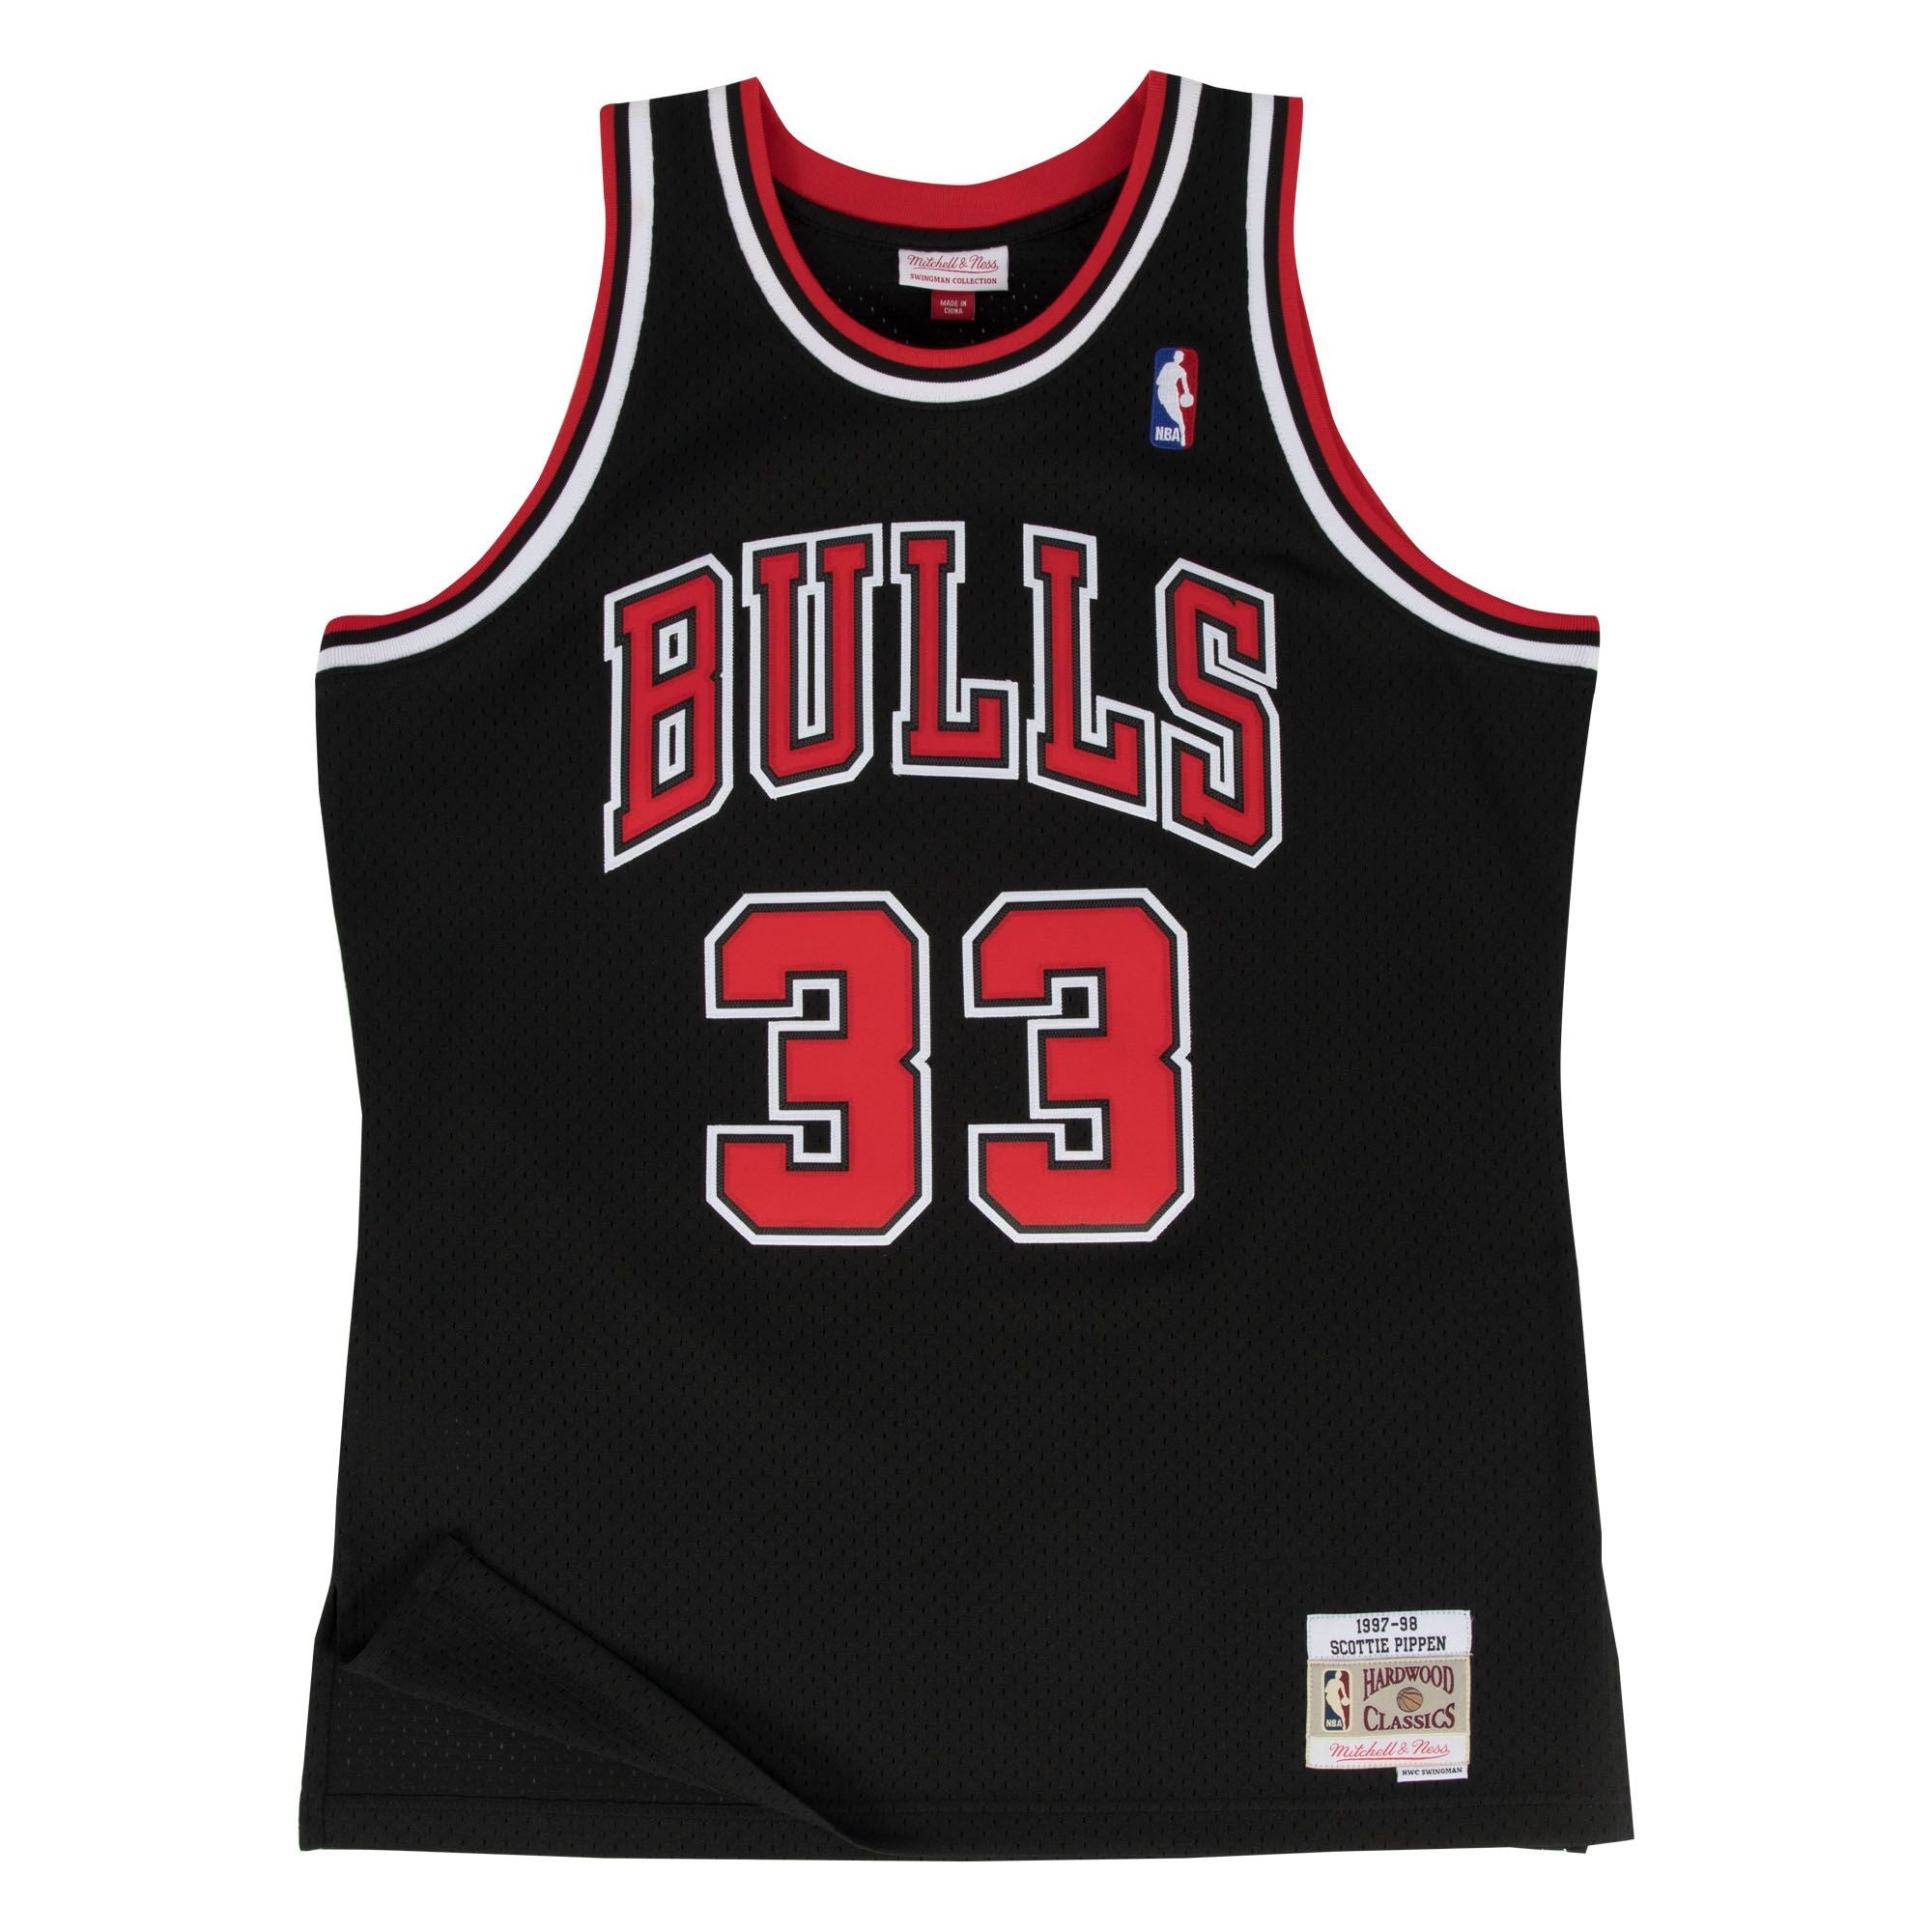 5ff3091bf8a Scottie Pippen Chicago Bulls Hardwood Classics Throwback NBA Swingman